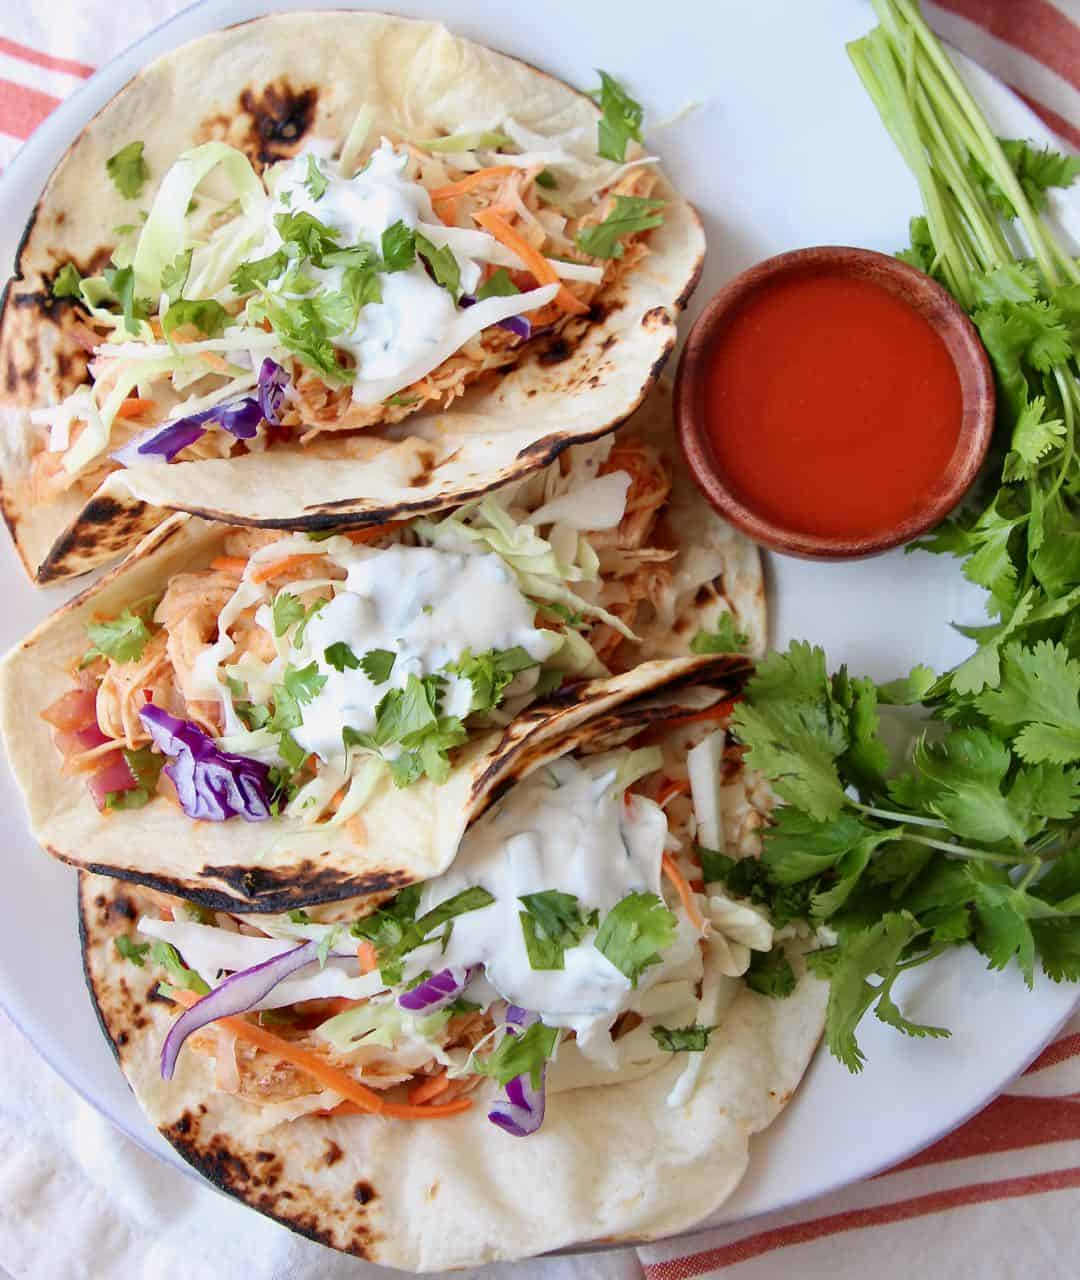 Three buffalo chicken tacos on white plate with side small bowl of buffalo sauce